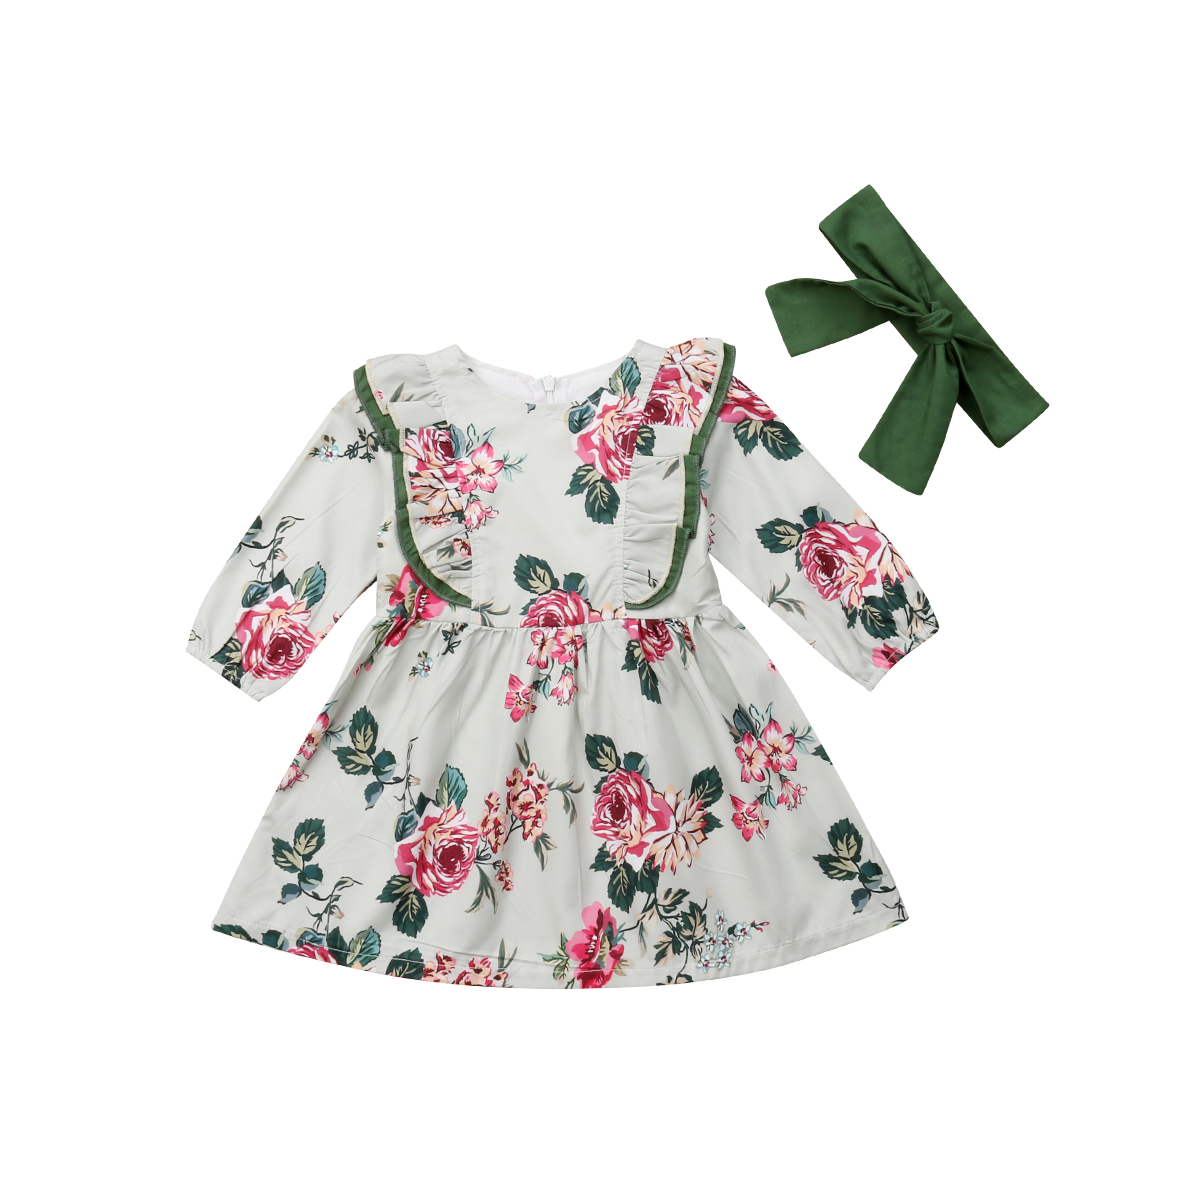 Toddler Kid Baby Girl Christmas Outfits Long Sleeve Pageant Party Princess Dress